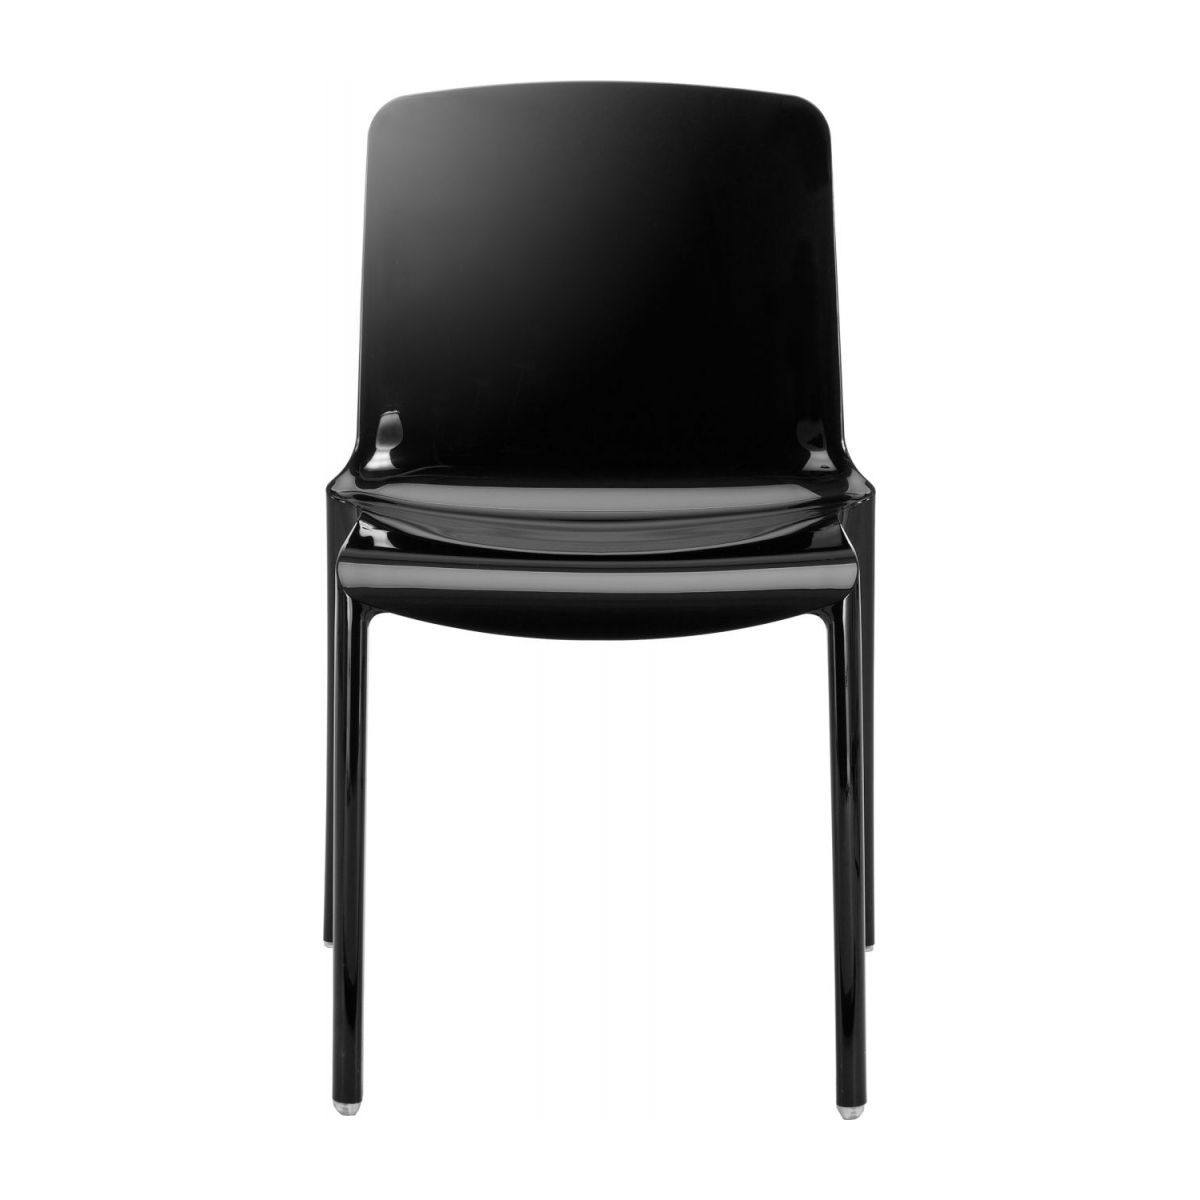 tallow chaises de salle manger noir plastique habitat. Black Bedroom Furniture Sets. Home Design Ideas